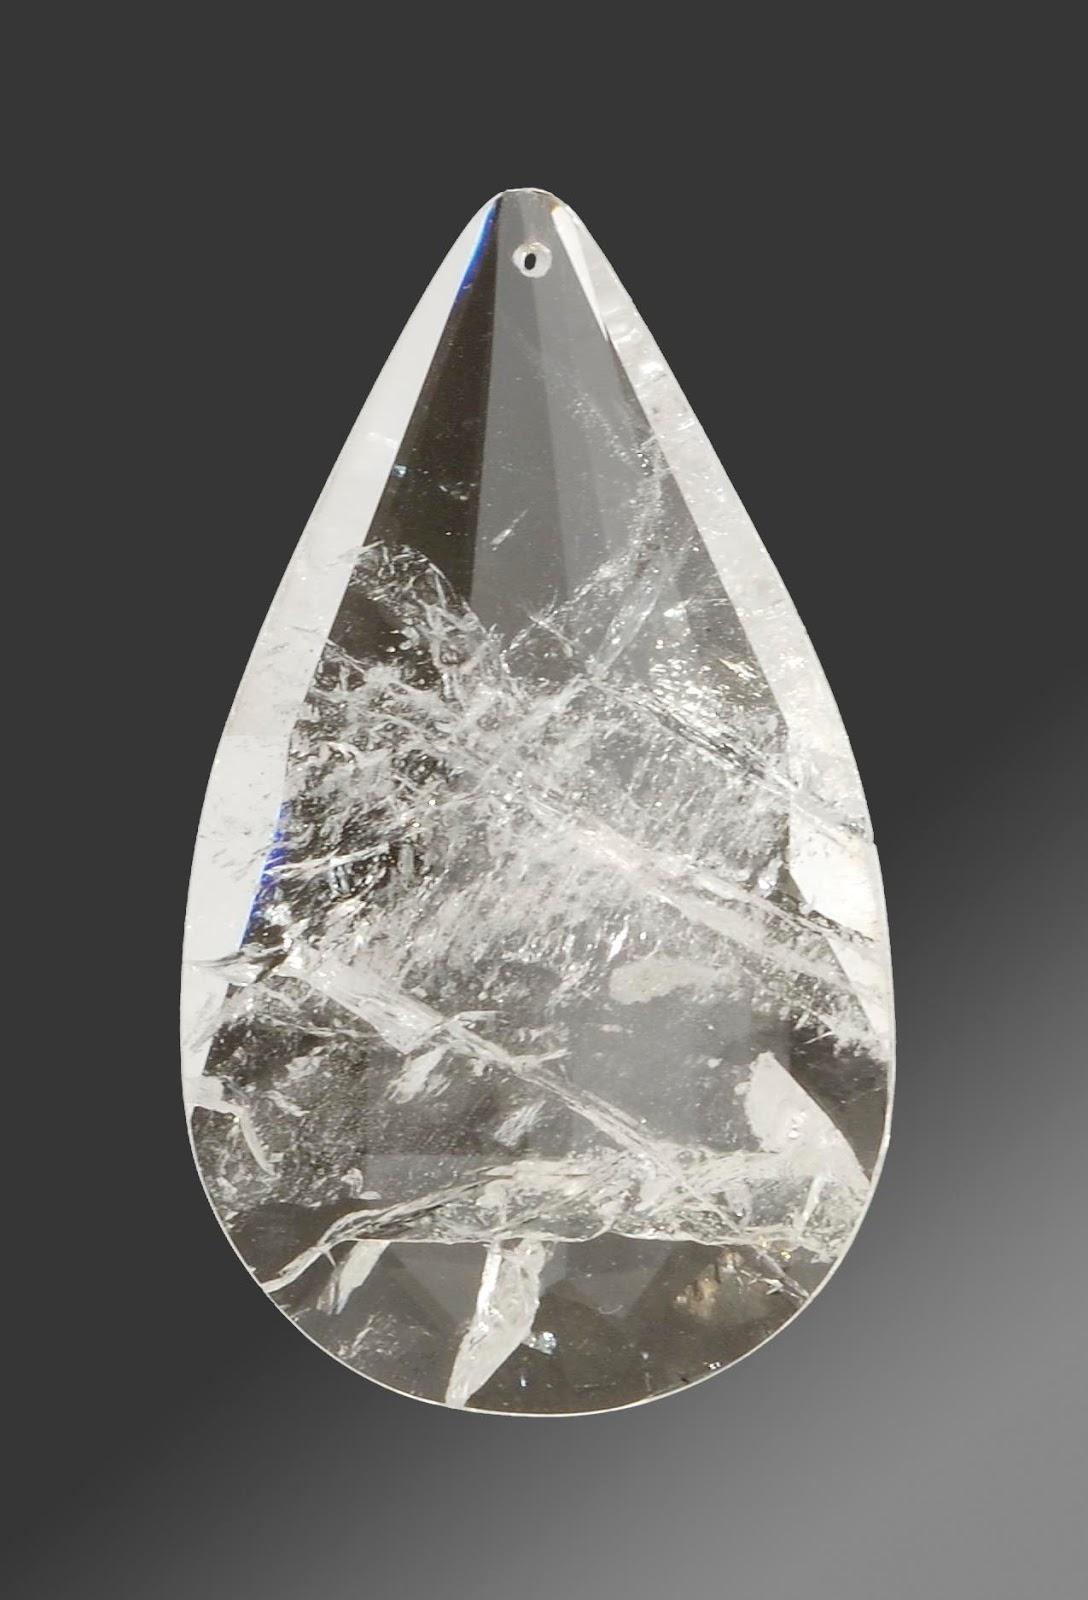 Lamp parts and repair lamp doctor advice on choosing clear rock crystal full cut almond these rock crystal chandelier crystals were originally used in the earliest days of indoor lighting when hanging aloadofball Image collections